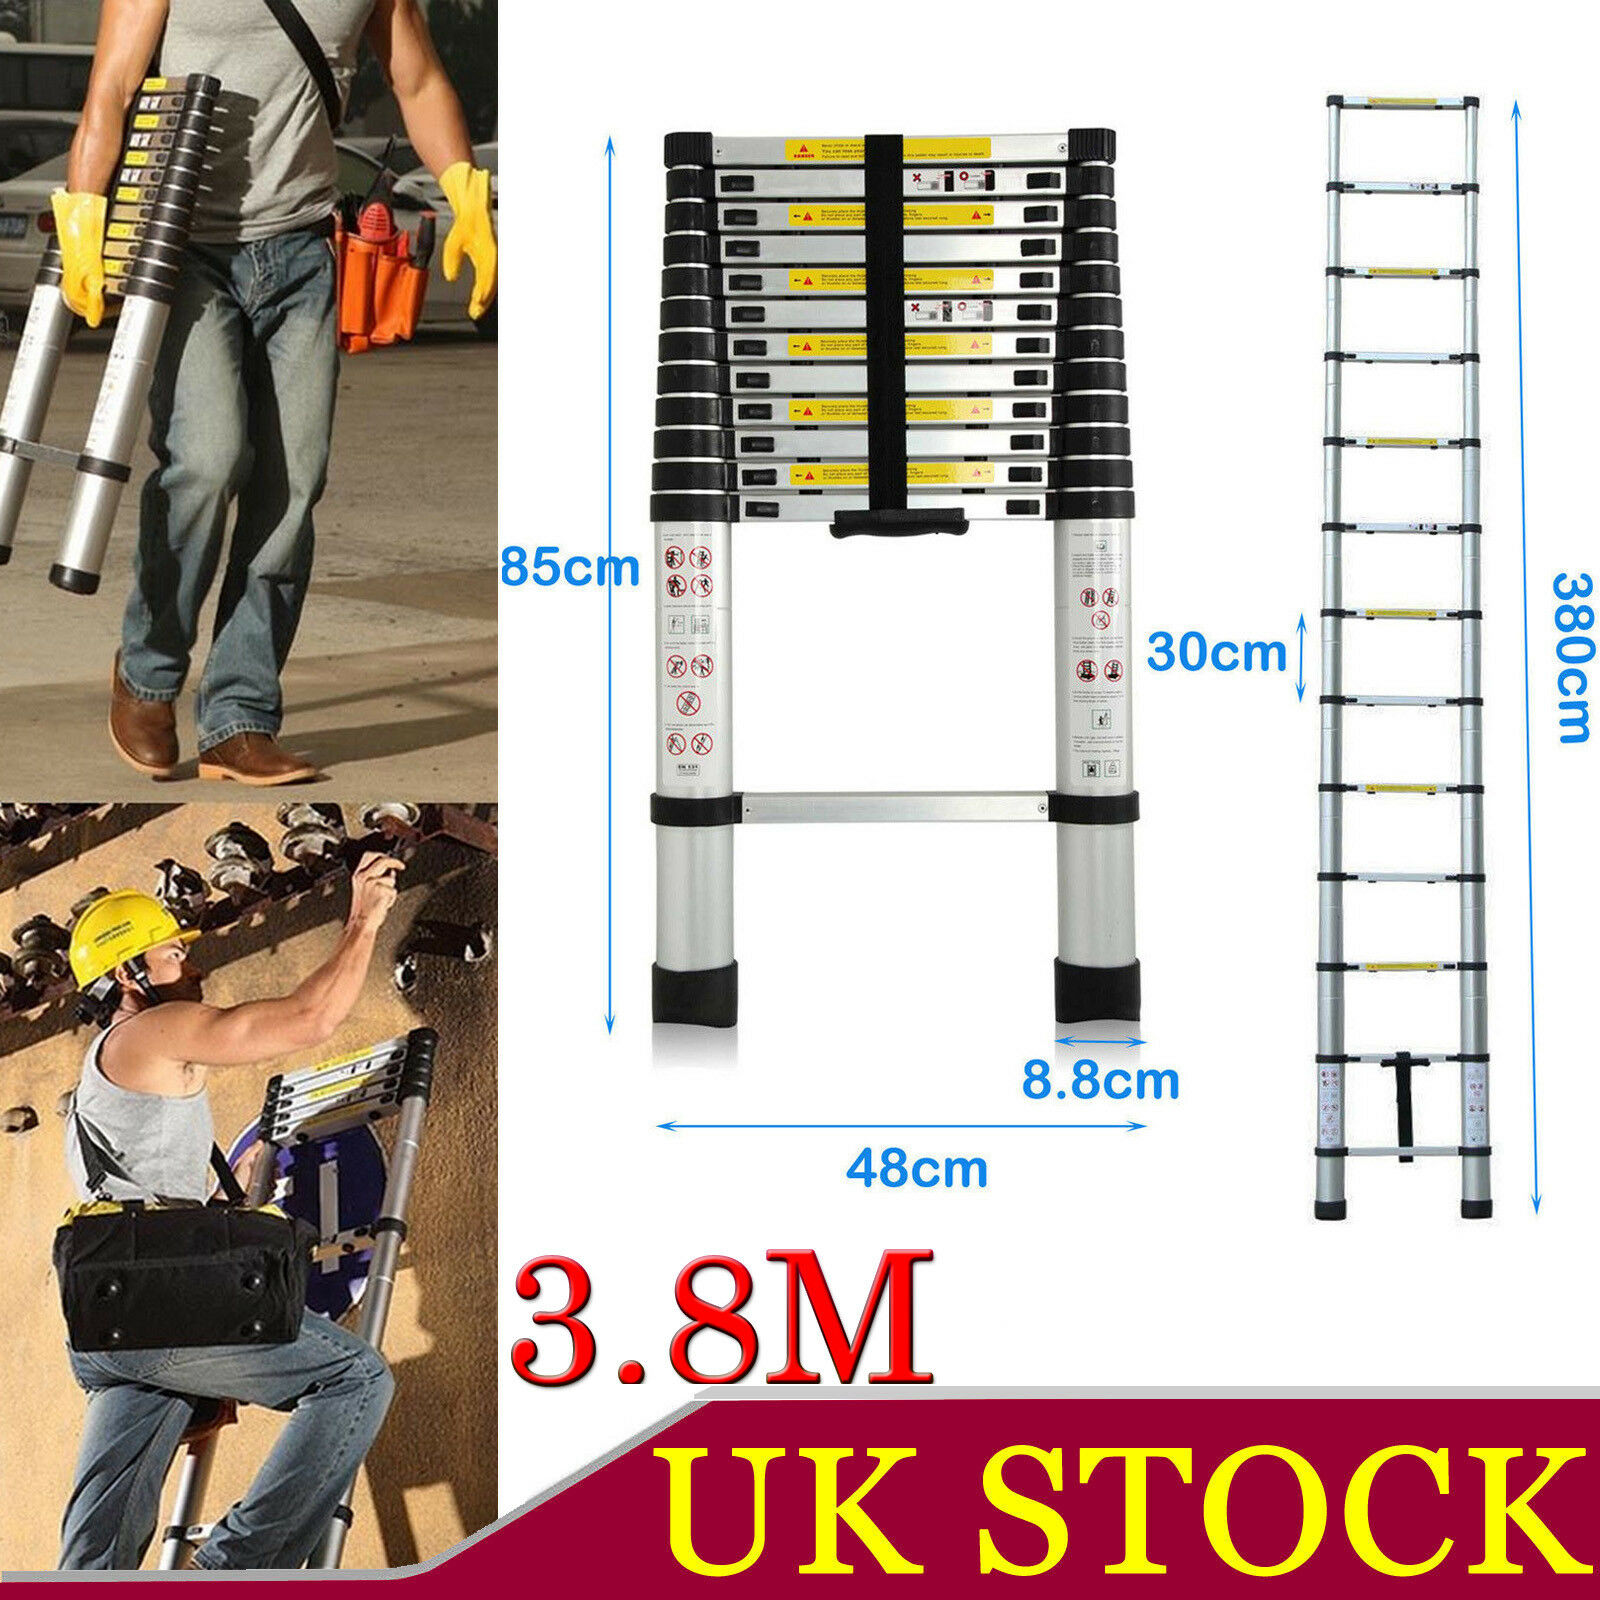 3.8Meter Aluminium Foldable Collapsible Retractable Telescoping Ladder Stairs UK